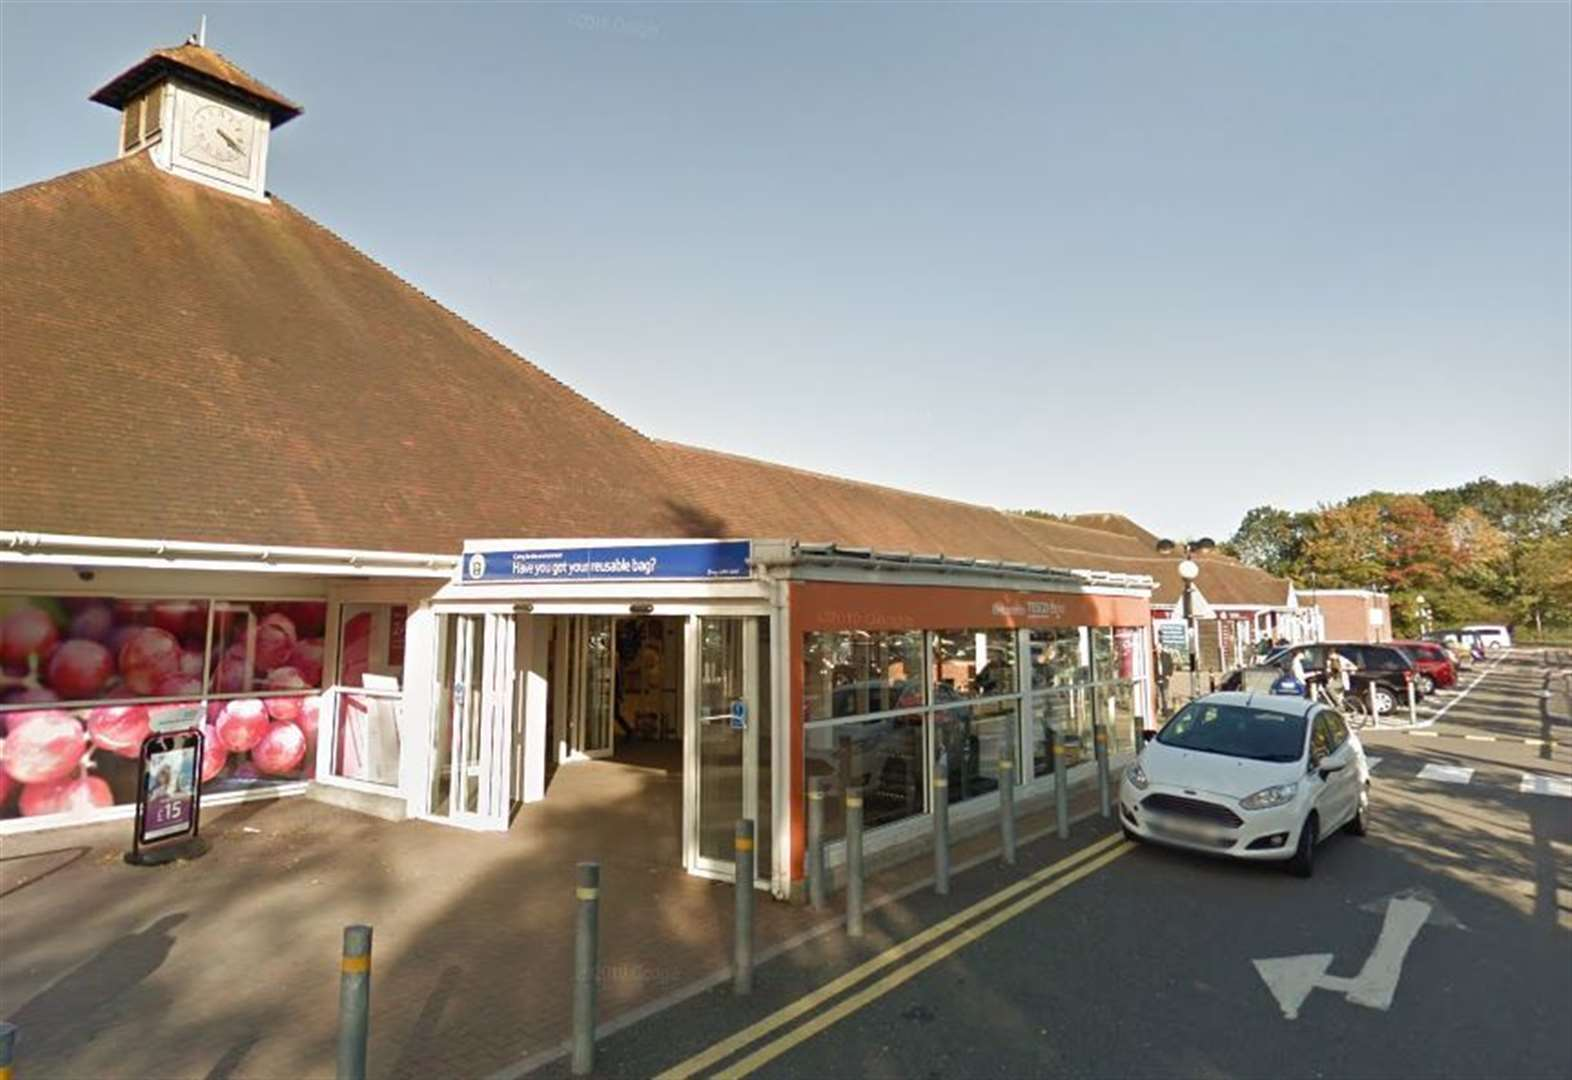 Supermarket ATM 'tampered with'